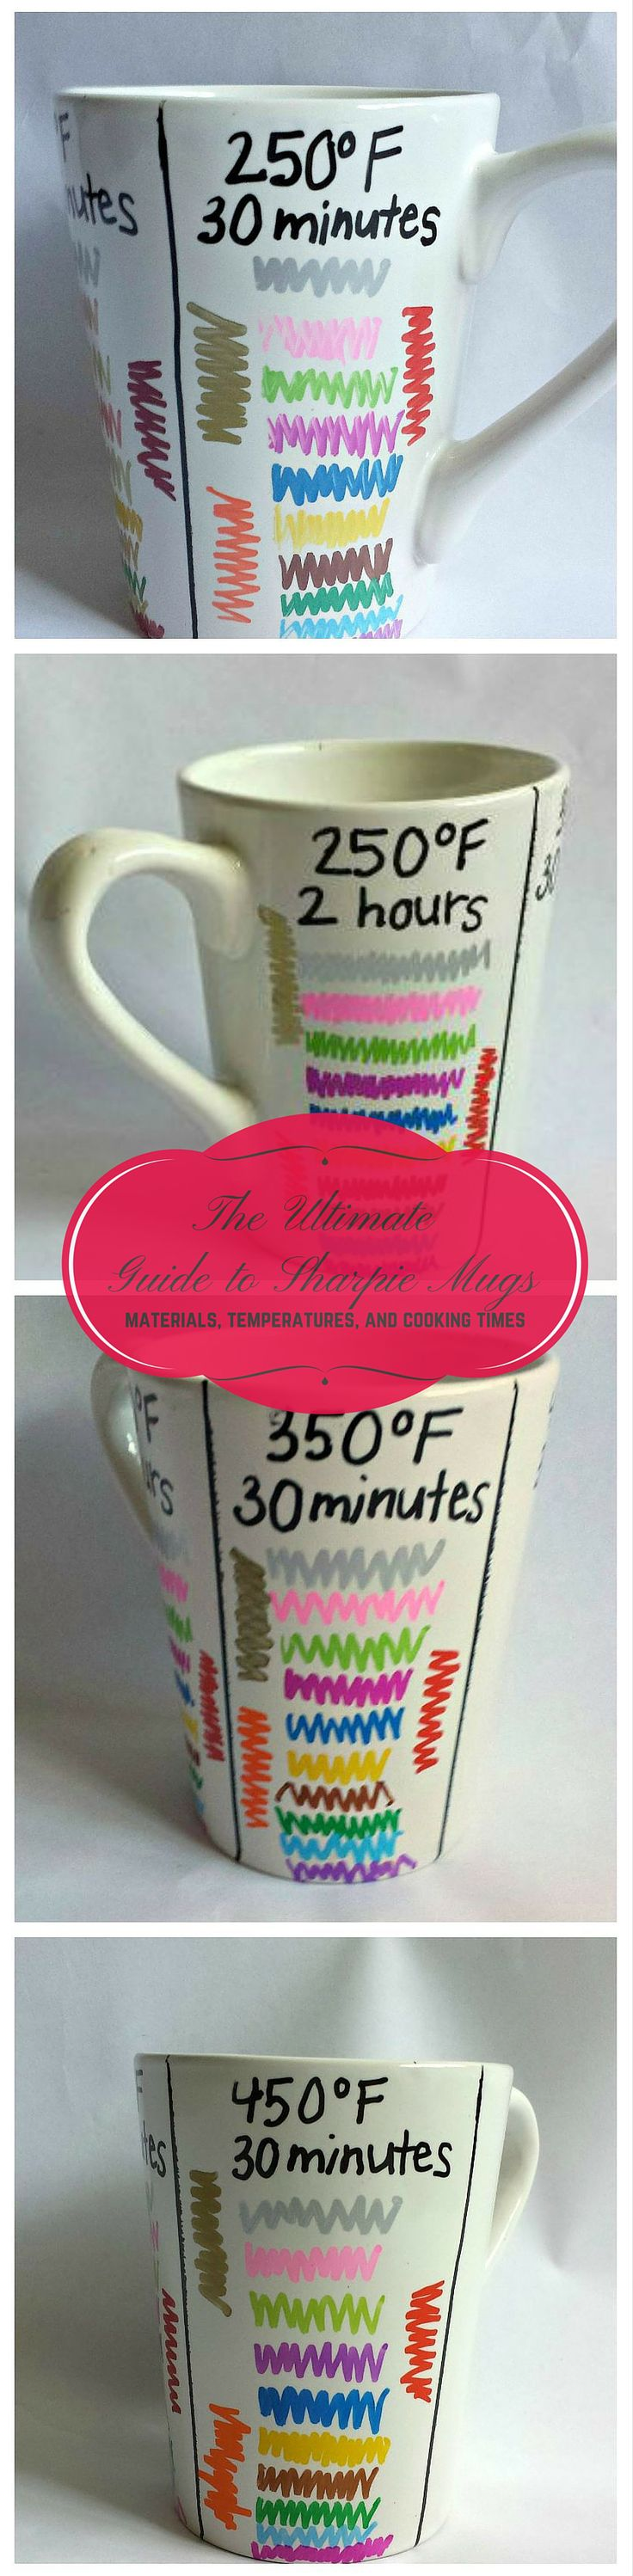 Personalized coffee mugs raleigh nc - The Best Way To Make A Sharpie Mug Set The Paint For Little To No